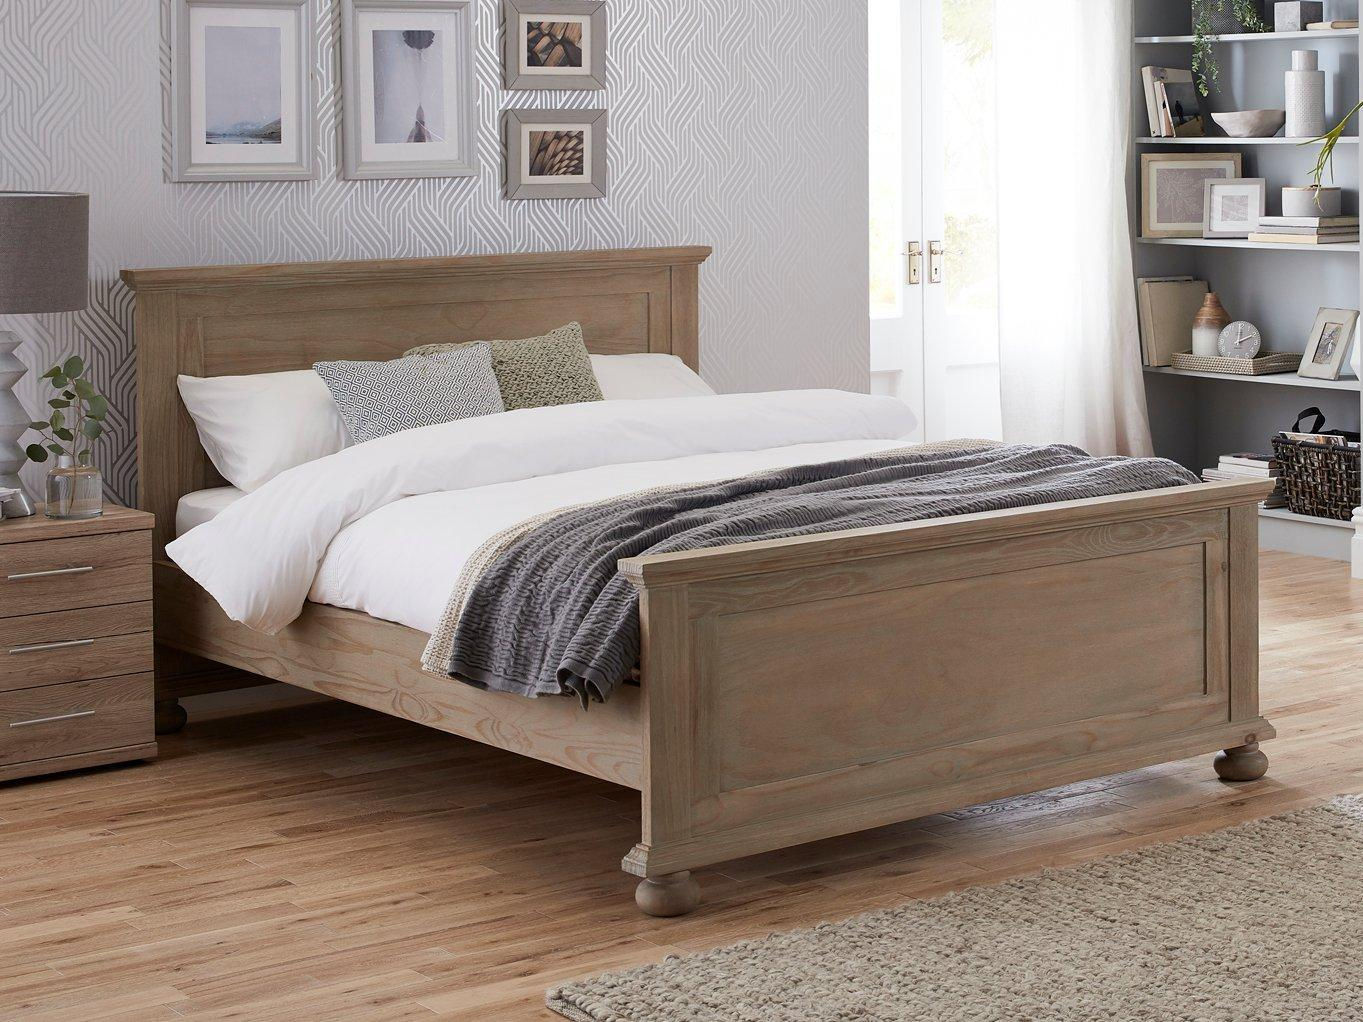 10 Best Double Beds The Independent